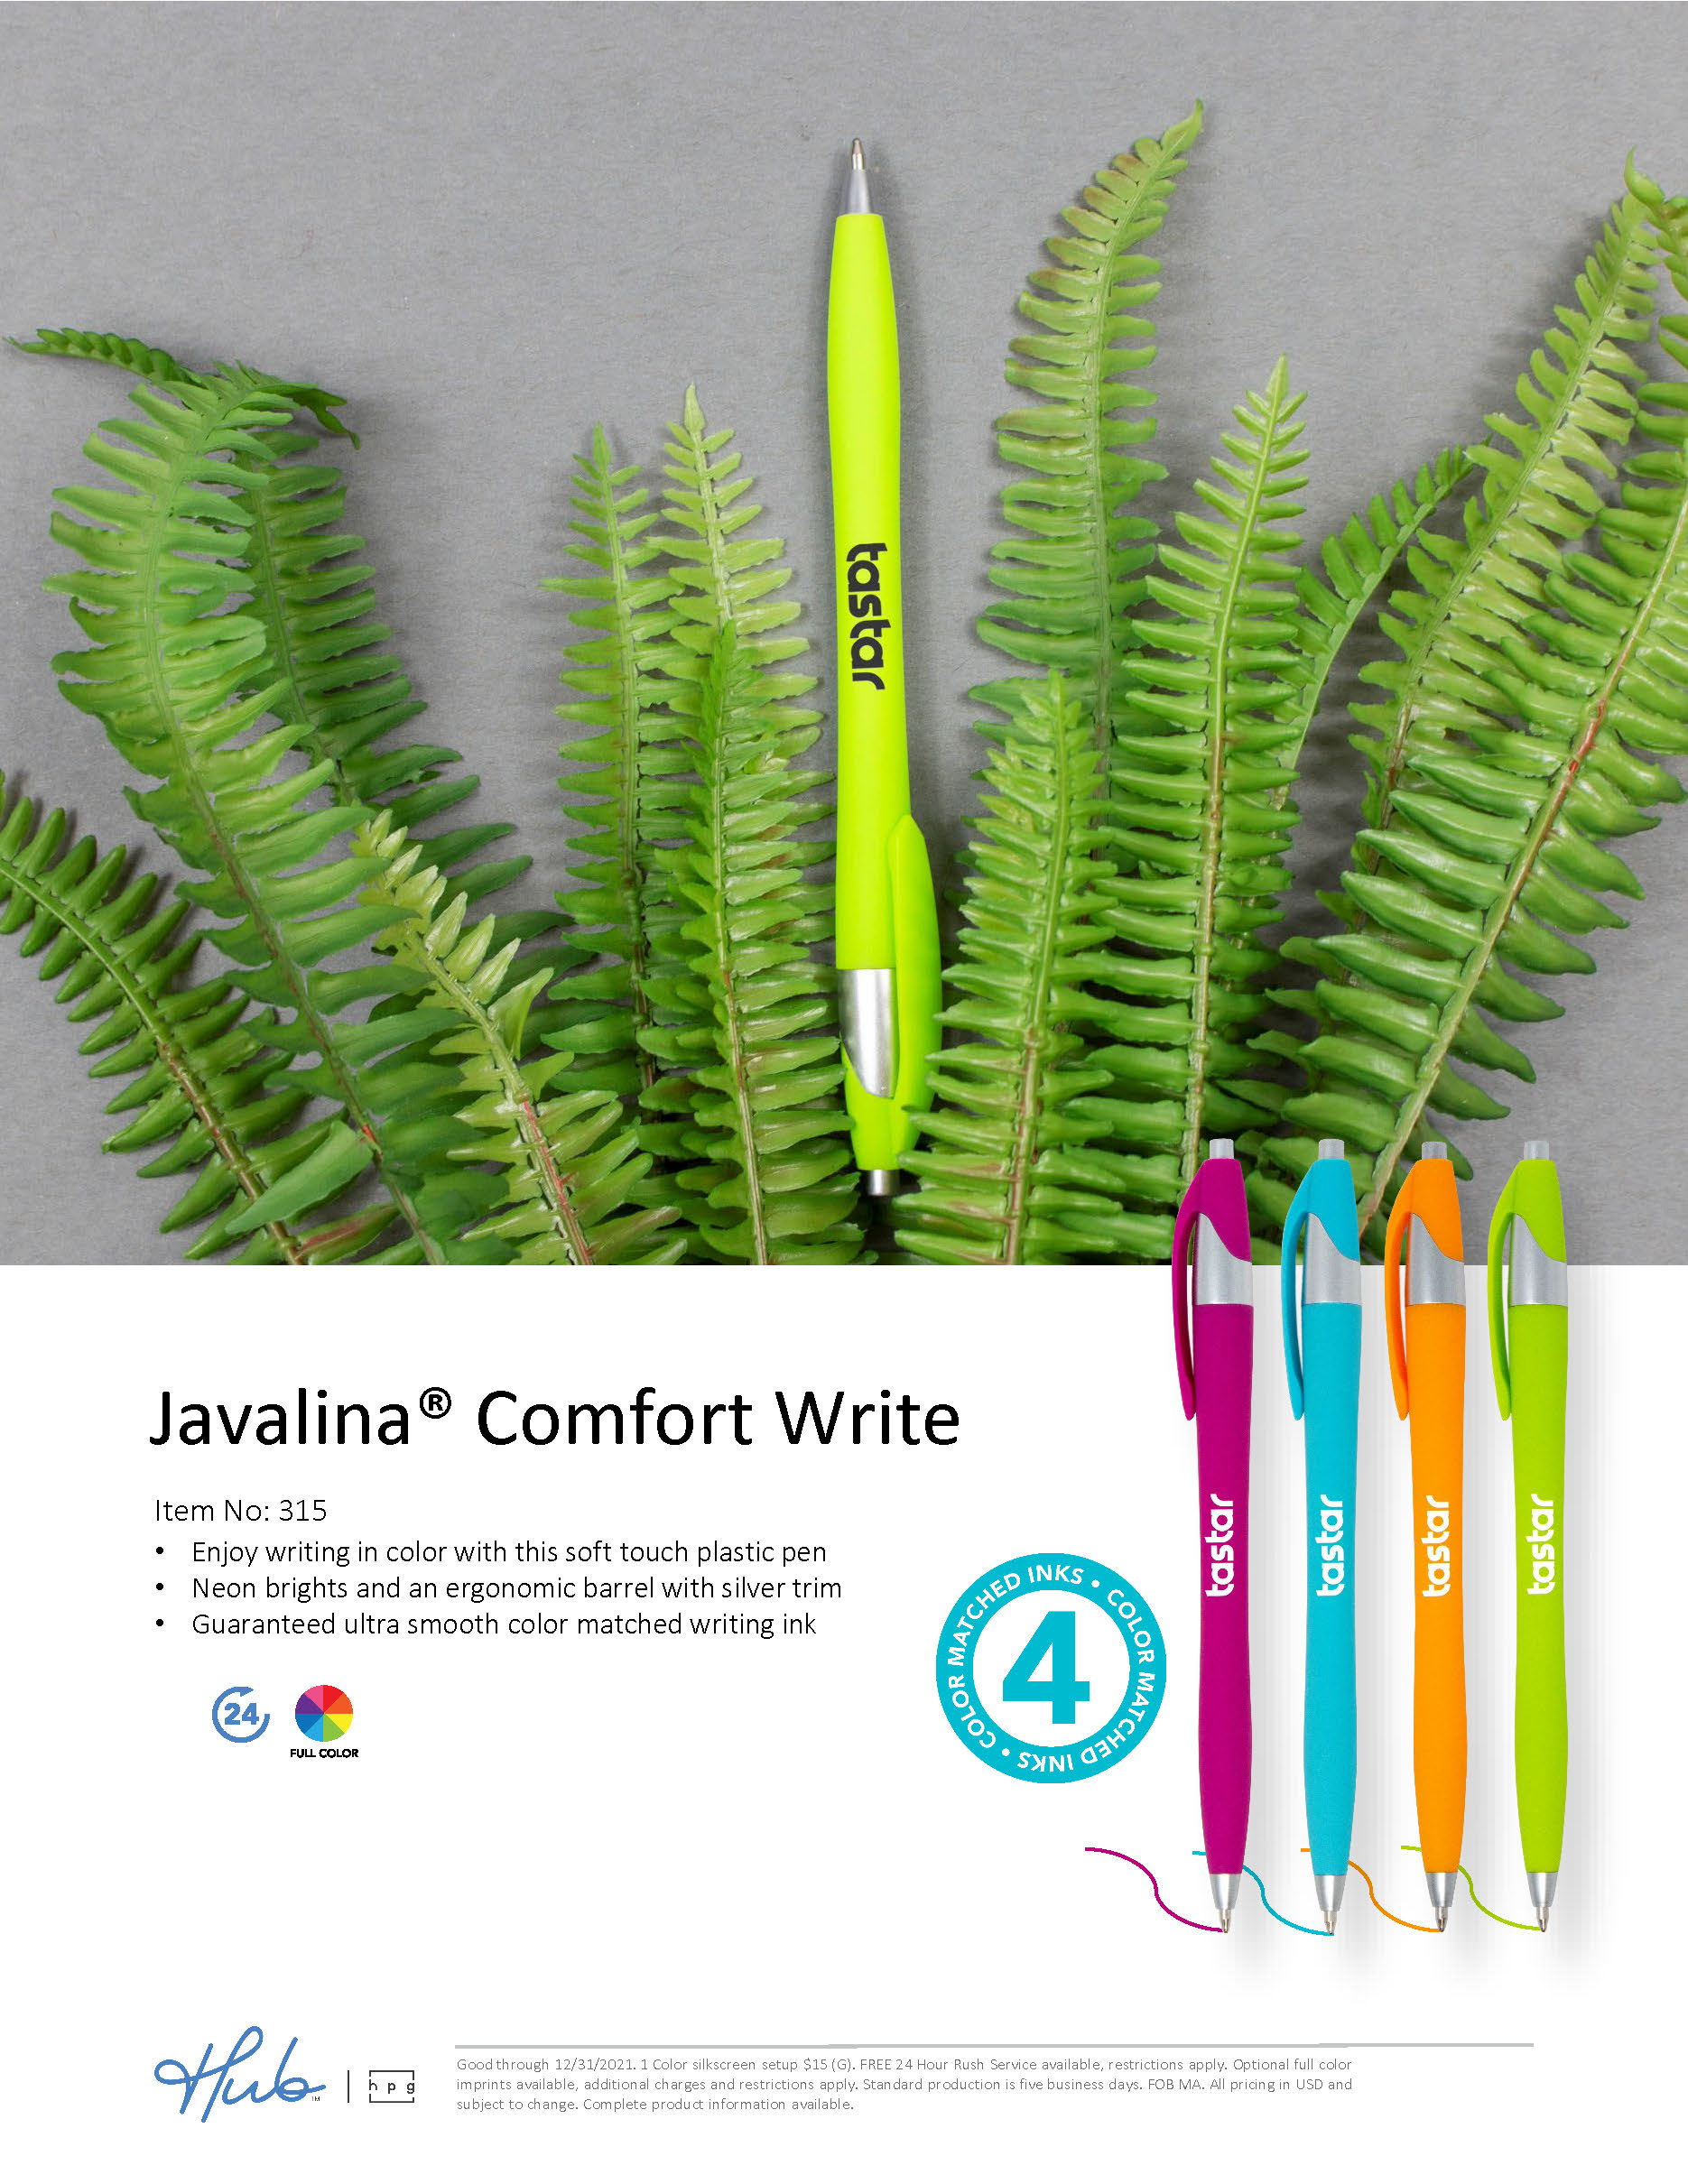 315 Javalina Comfort Write with 4 color matched inks